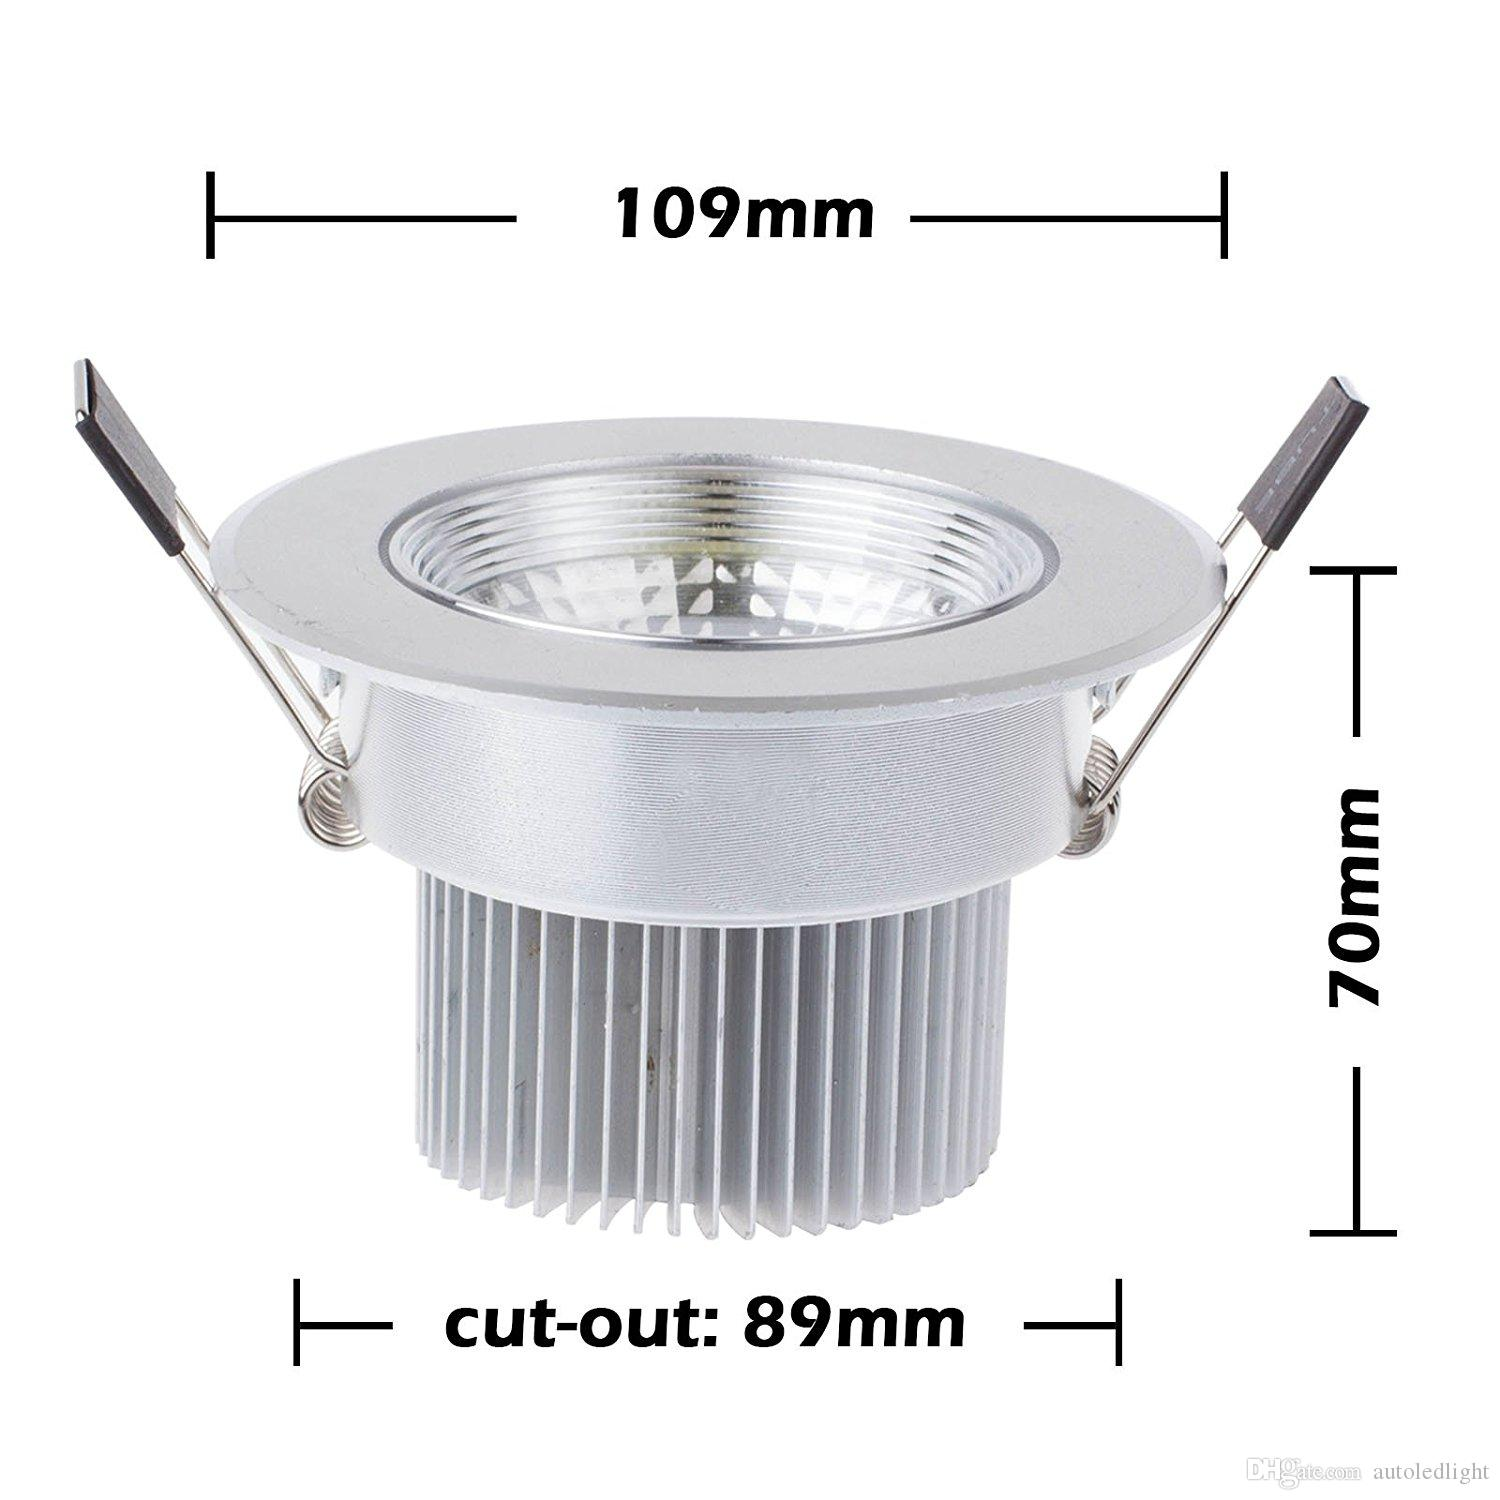 dimmable 7 Watts COB LED Ceiling Light Downlight Warm/Cool White Spotlight Lamp Recessed Lighting Fixture , Halogen Bulb Replacement